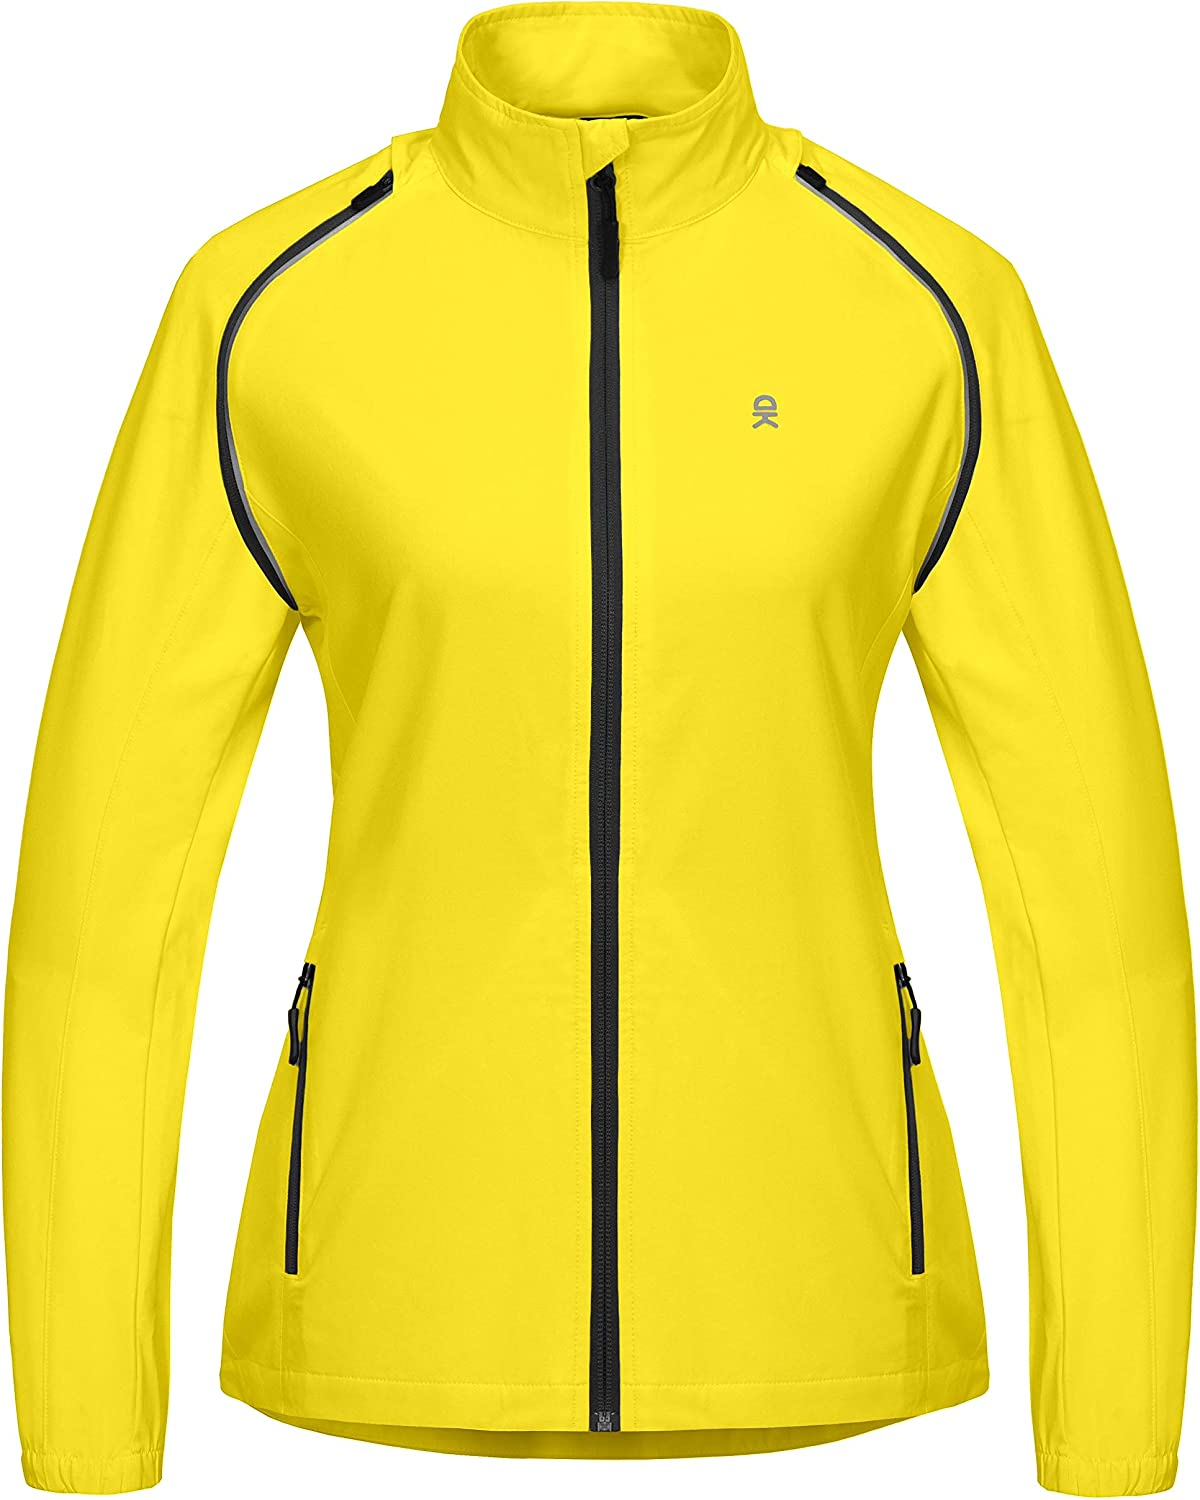 Little Donkey Andy Women's Quick-Dry Running Jacket, Convertible UPF 50+ Cycling Jacket Windbreaker with Removable Sleeves : Sports & Outdoors